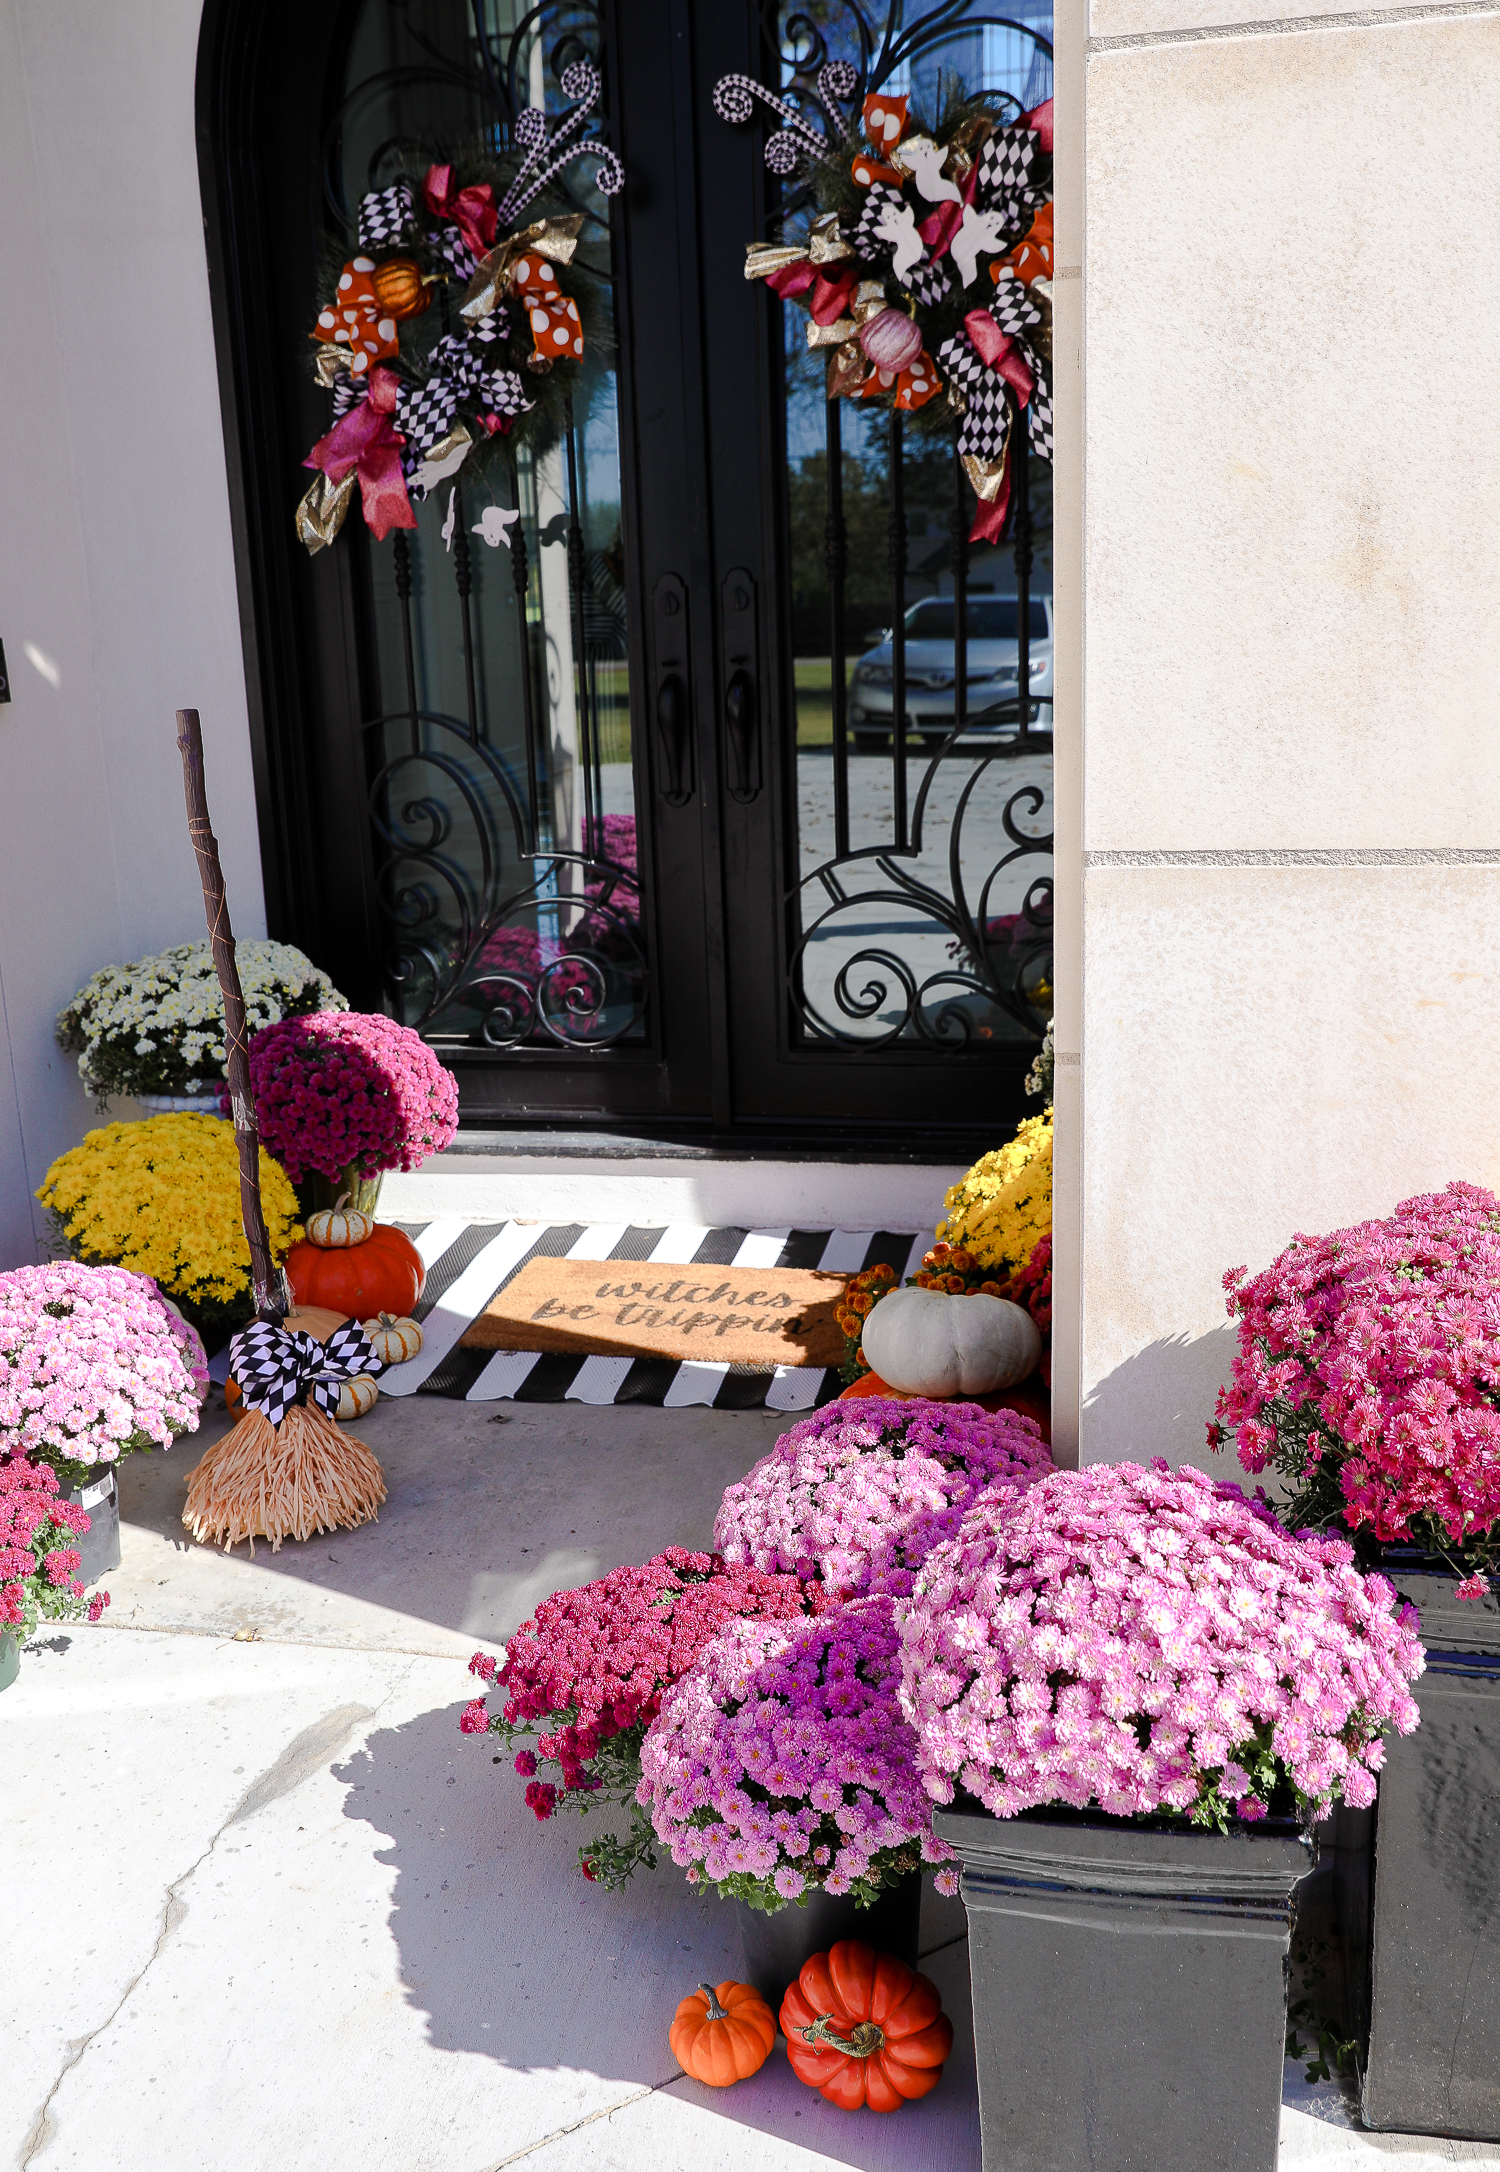 pink mums, front door decor striped rug, pink mums, fall halloween decor, shop hello holidays, emily gemma | Fall & Halloween Home Decor Tour by popular Oklahoma life and style blog, The Sweetest Thing: image of the front entrance to a home decorated with pink mums, pumpkins, a black and white stripe rug, and a welcome mat.